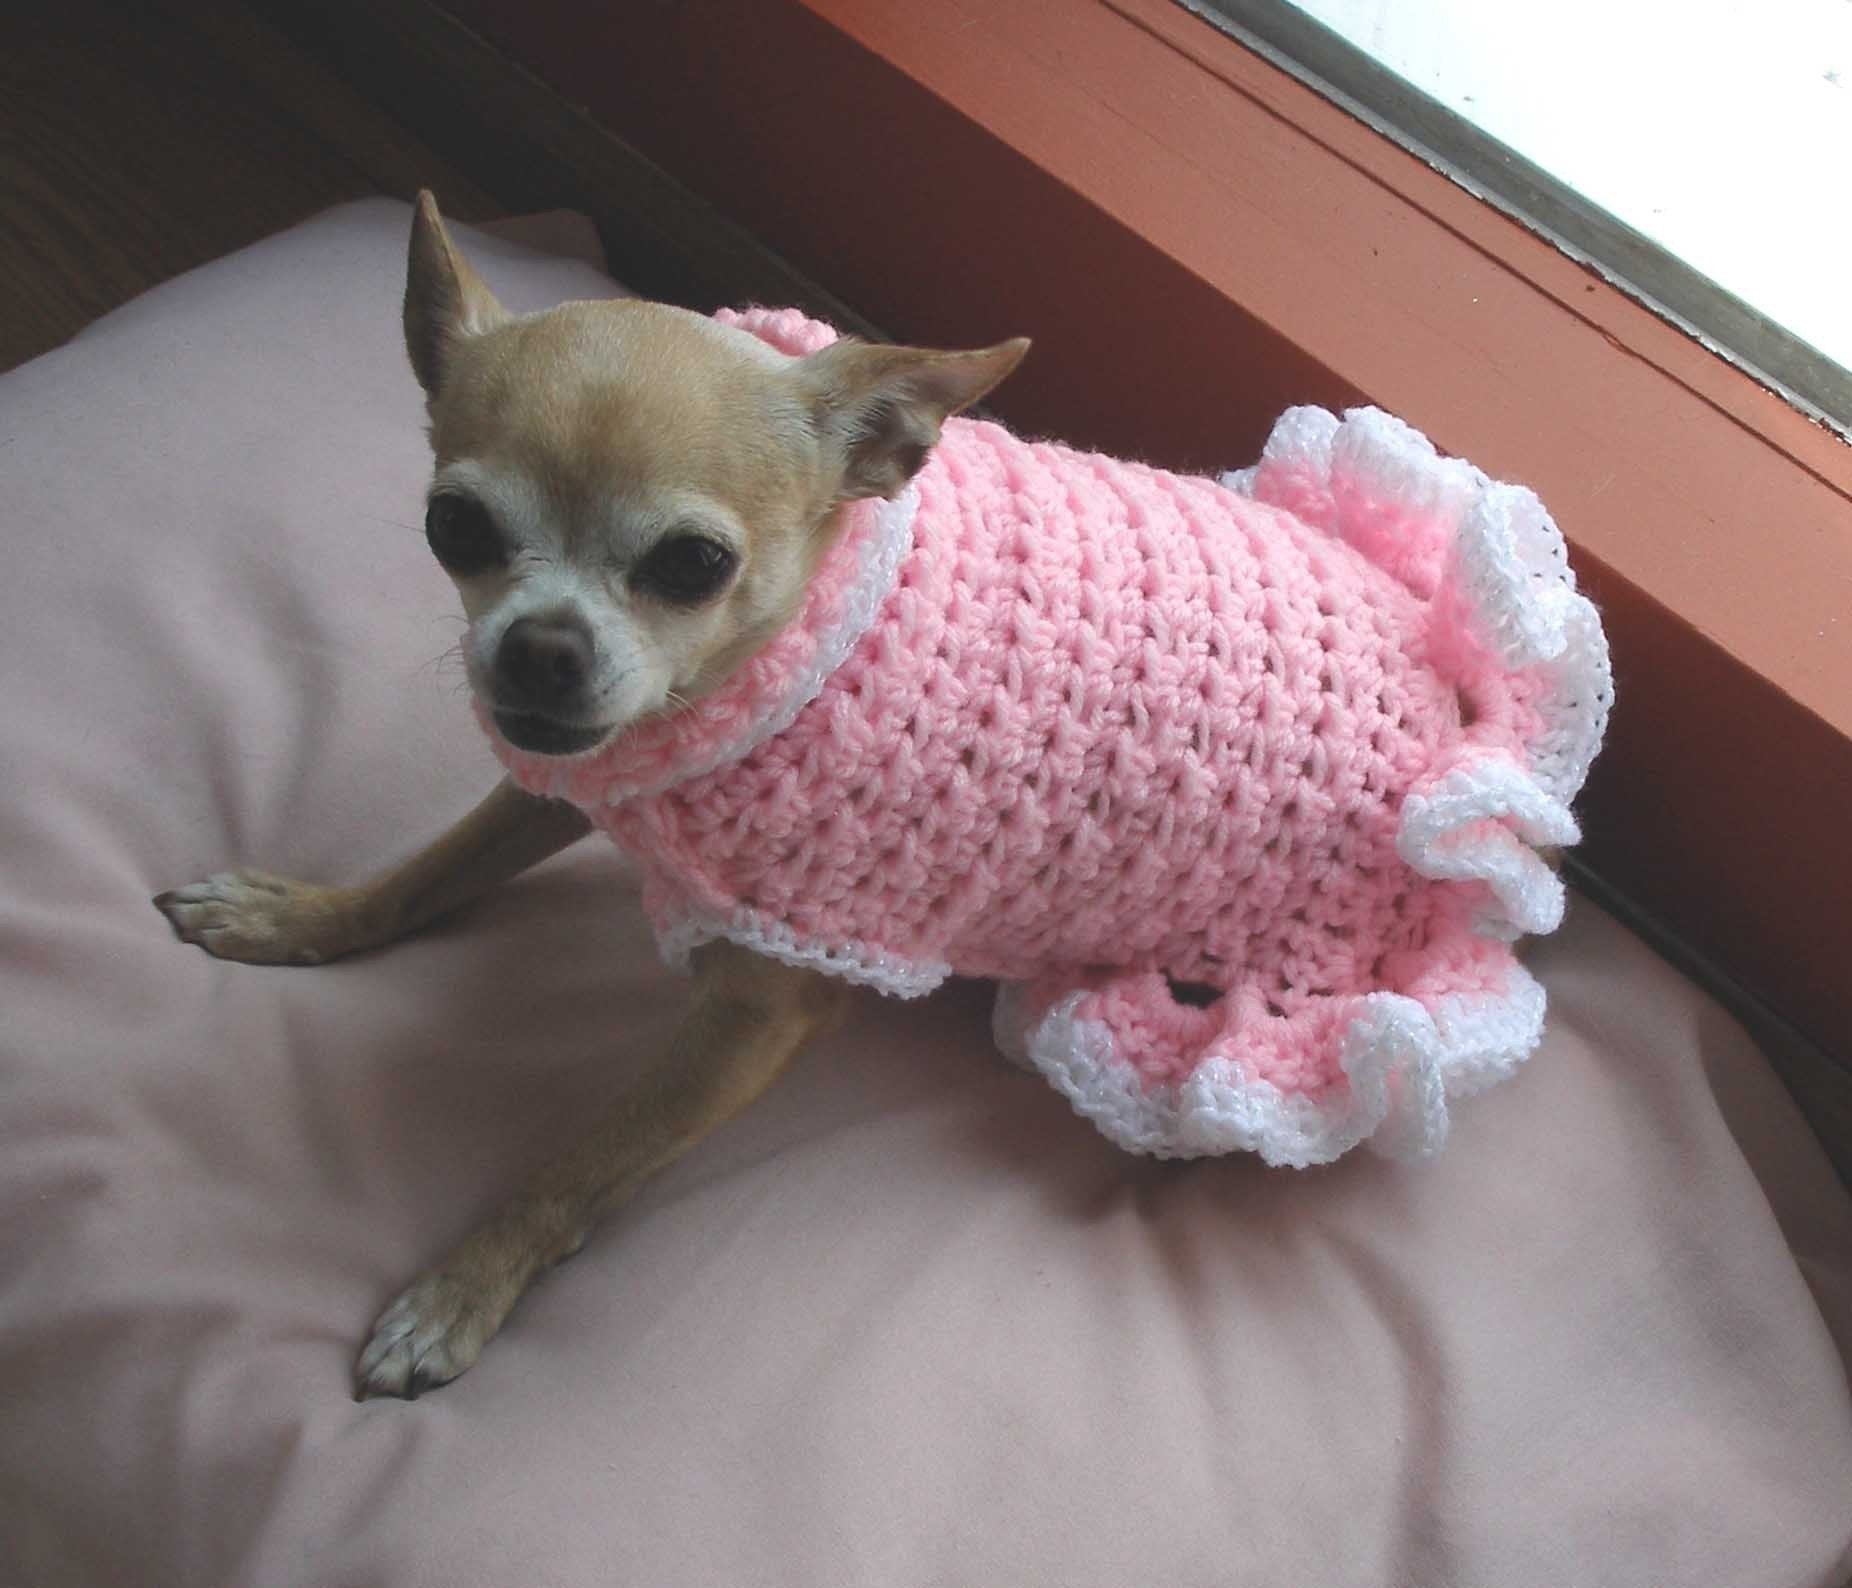 Crochet Patterns Dog Sweater : PDF Crochet Pattern Cha-Cha Dog Sweater Dress by ozarknomad